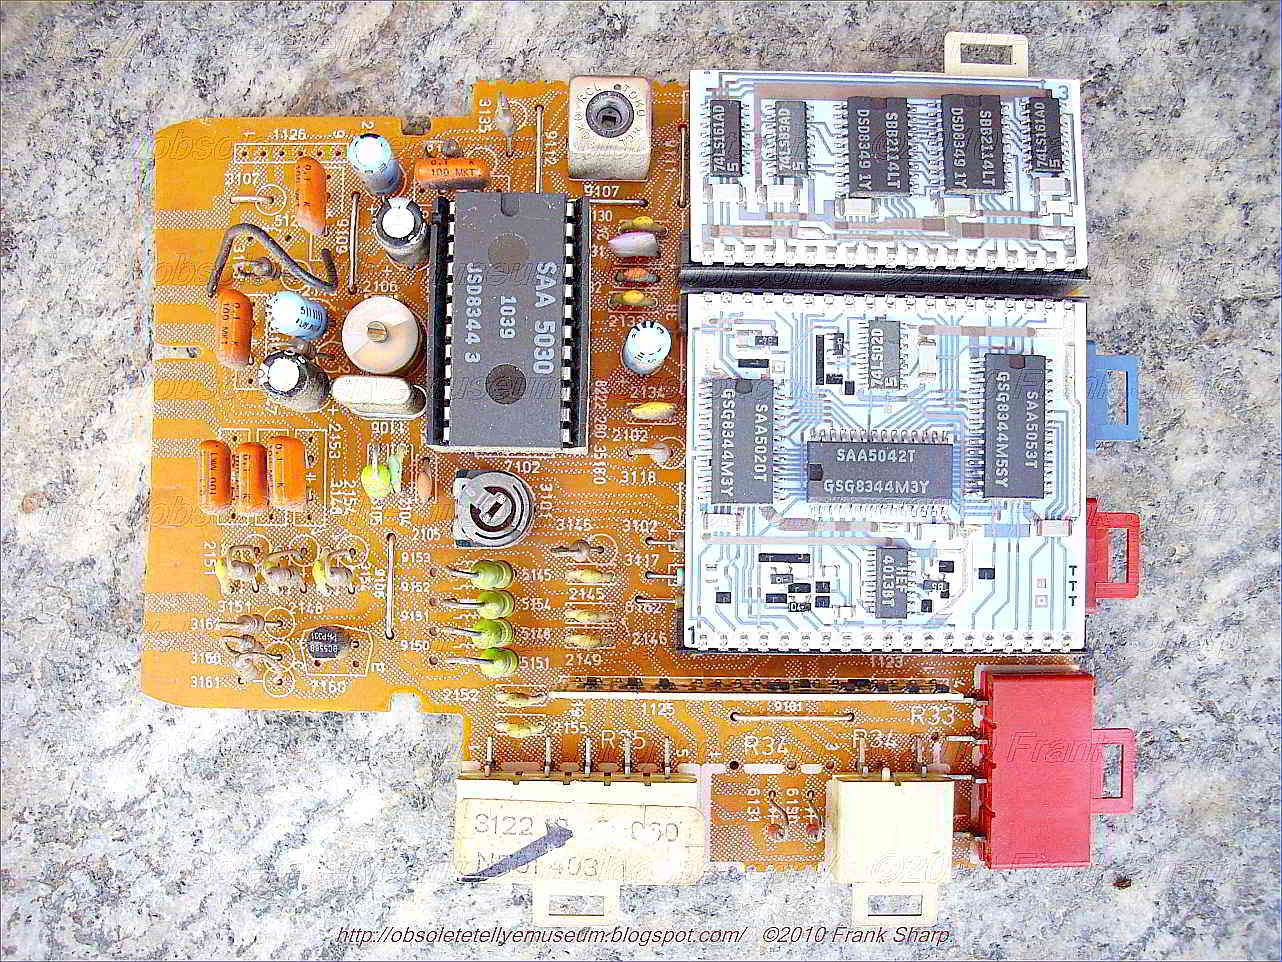 Obsolete Technology Tellye Philips Stereo Receiver V6820 Besides 50 Gfci Breaker Wiring Diagram Furthermore Hot Tub 220 Advantages Include Increased Component Packing Density Board Sizes Reduced By 35 Per Cent